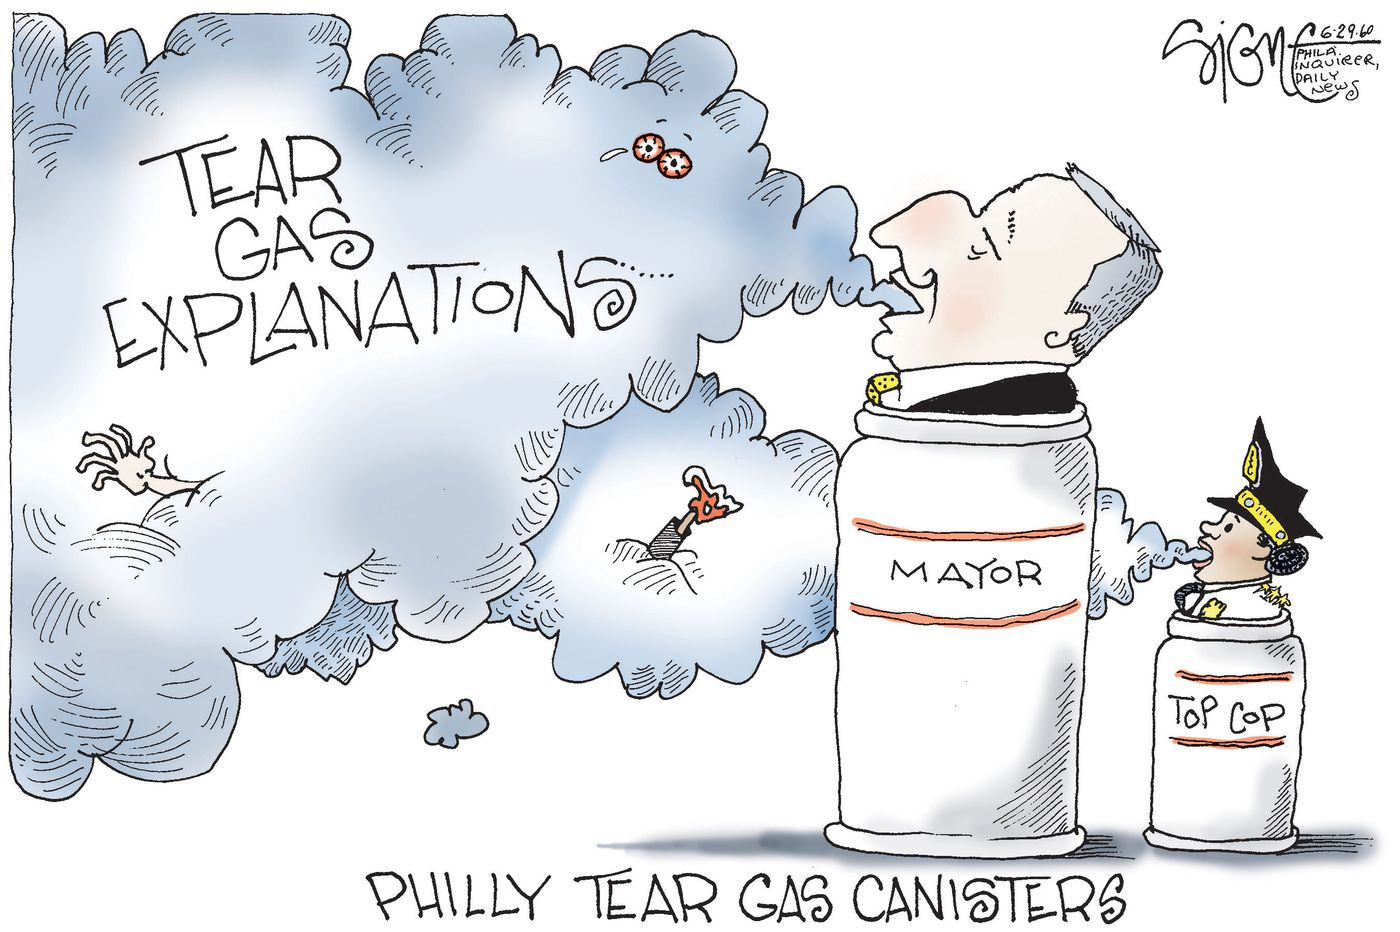 Political Cartoon: Philly's tear gas explanations bring tears to our eyes